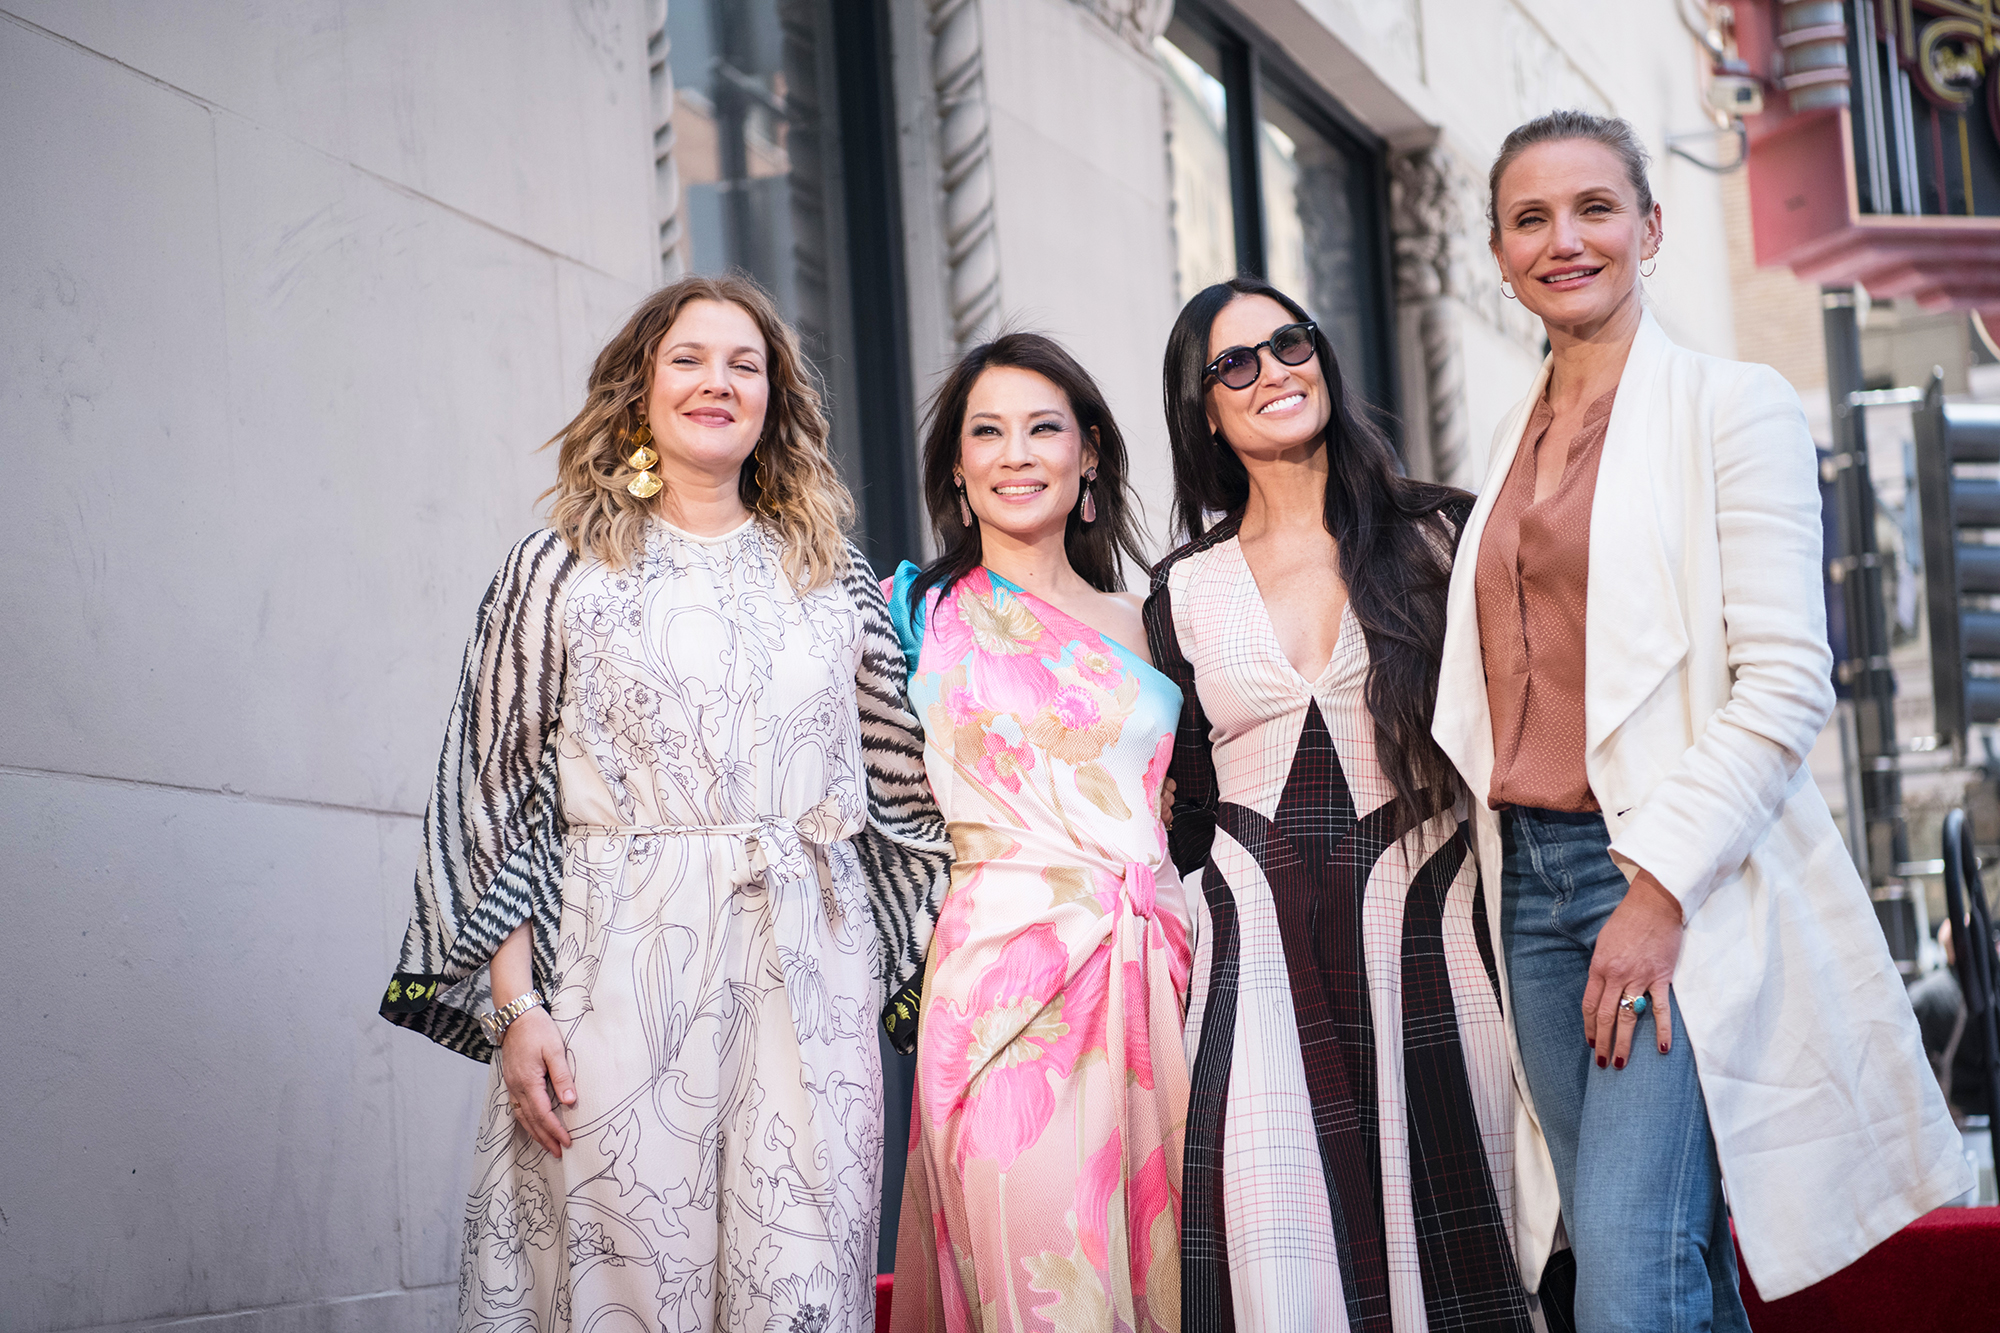 Charlie's Angels Cameron Diaz Drew Barrymore Demi Moore Lucy Liu Walk of Fame - Drew Barrymore, Lucy Liu, Demi Moore, and Cameron Diaz at Lucy Liu's Hollywood Walk of Fame star ceremony on May 01, 2019 in Hollywood, California.